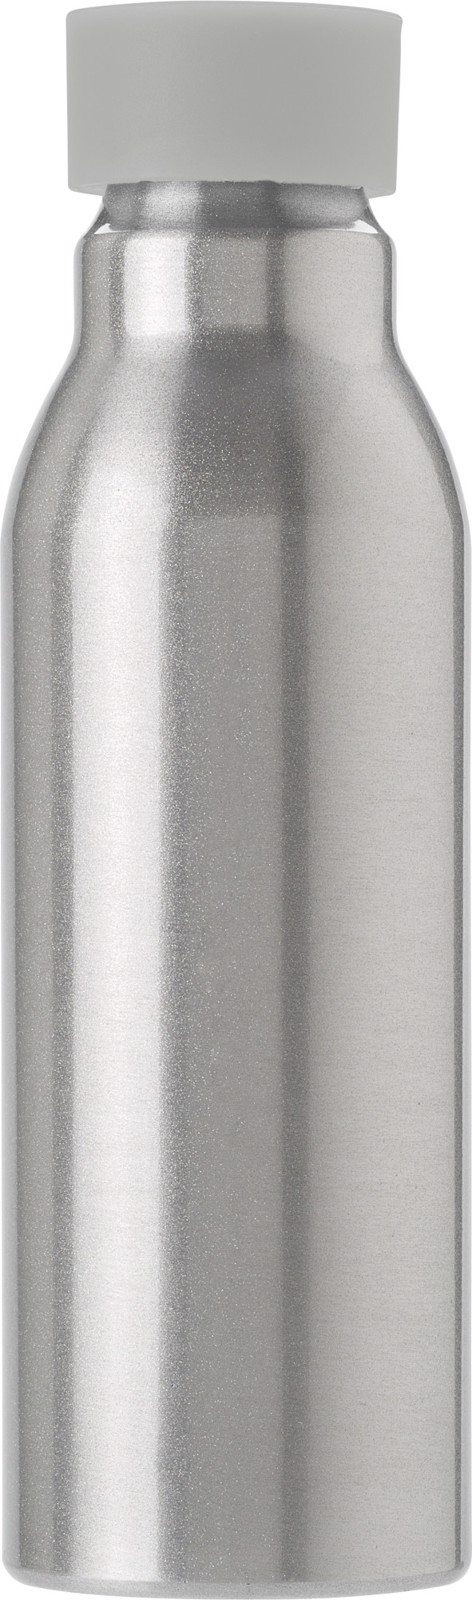 Aluminium bottle - Silver